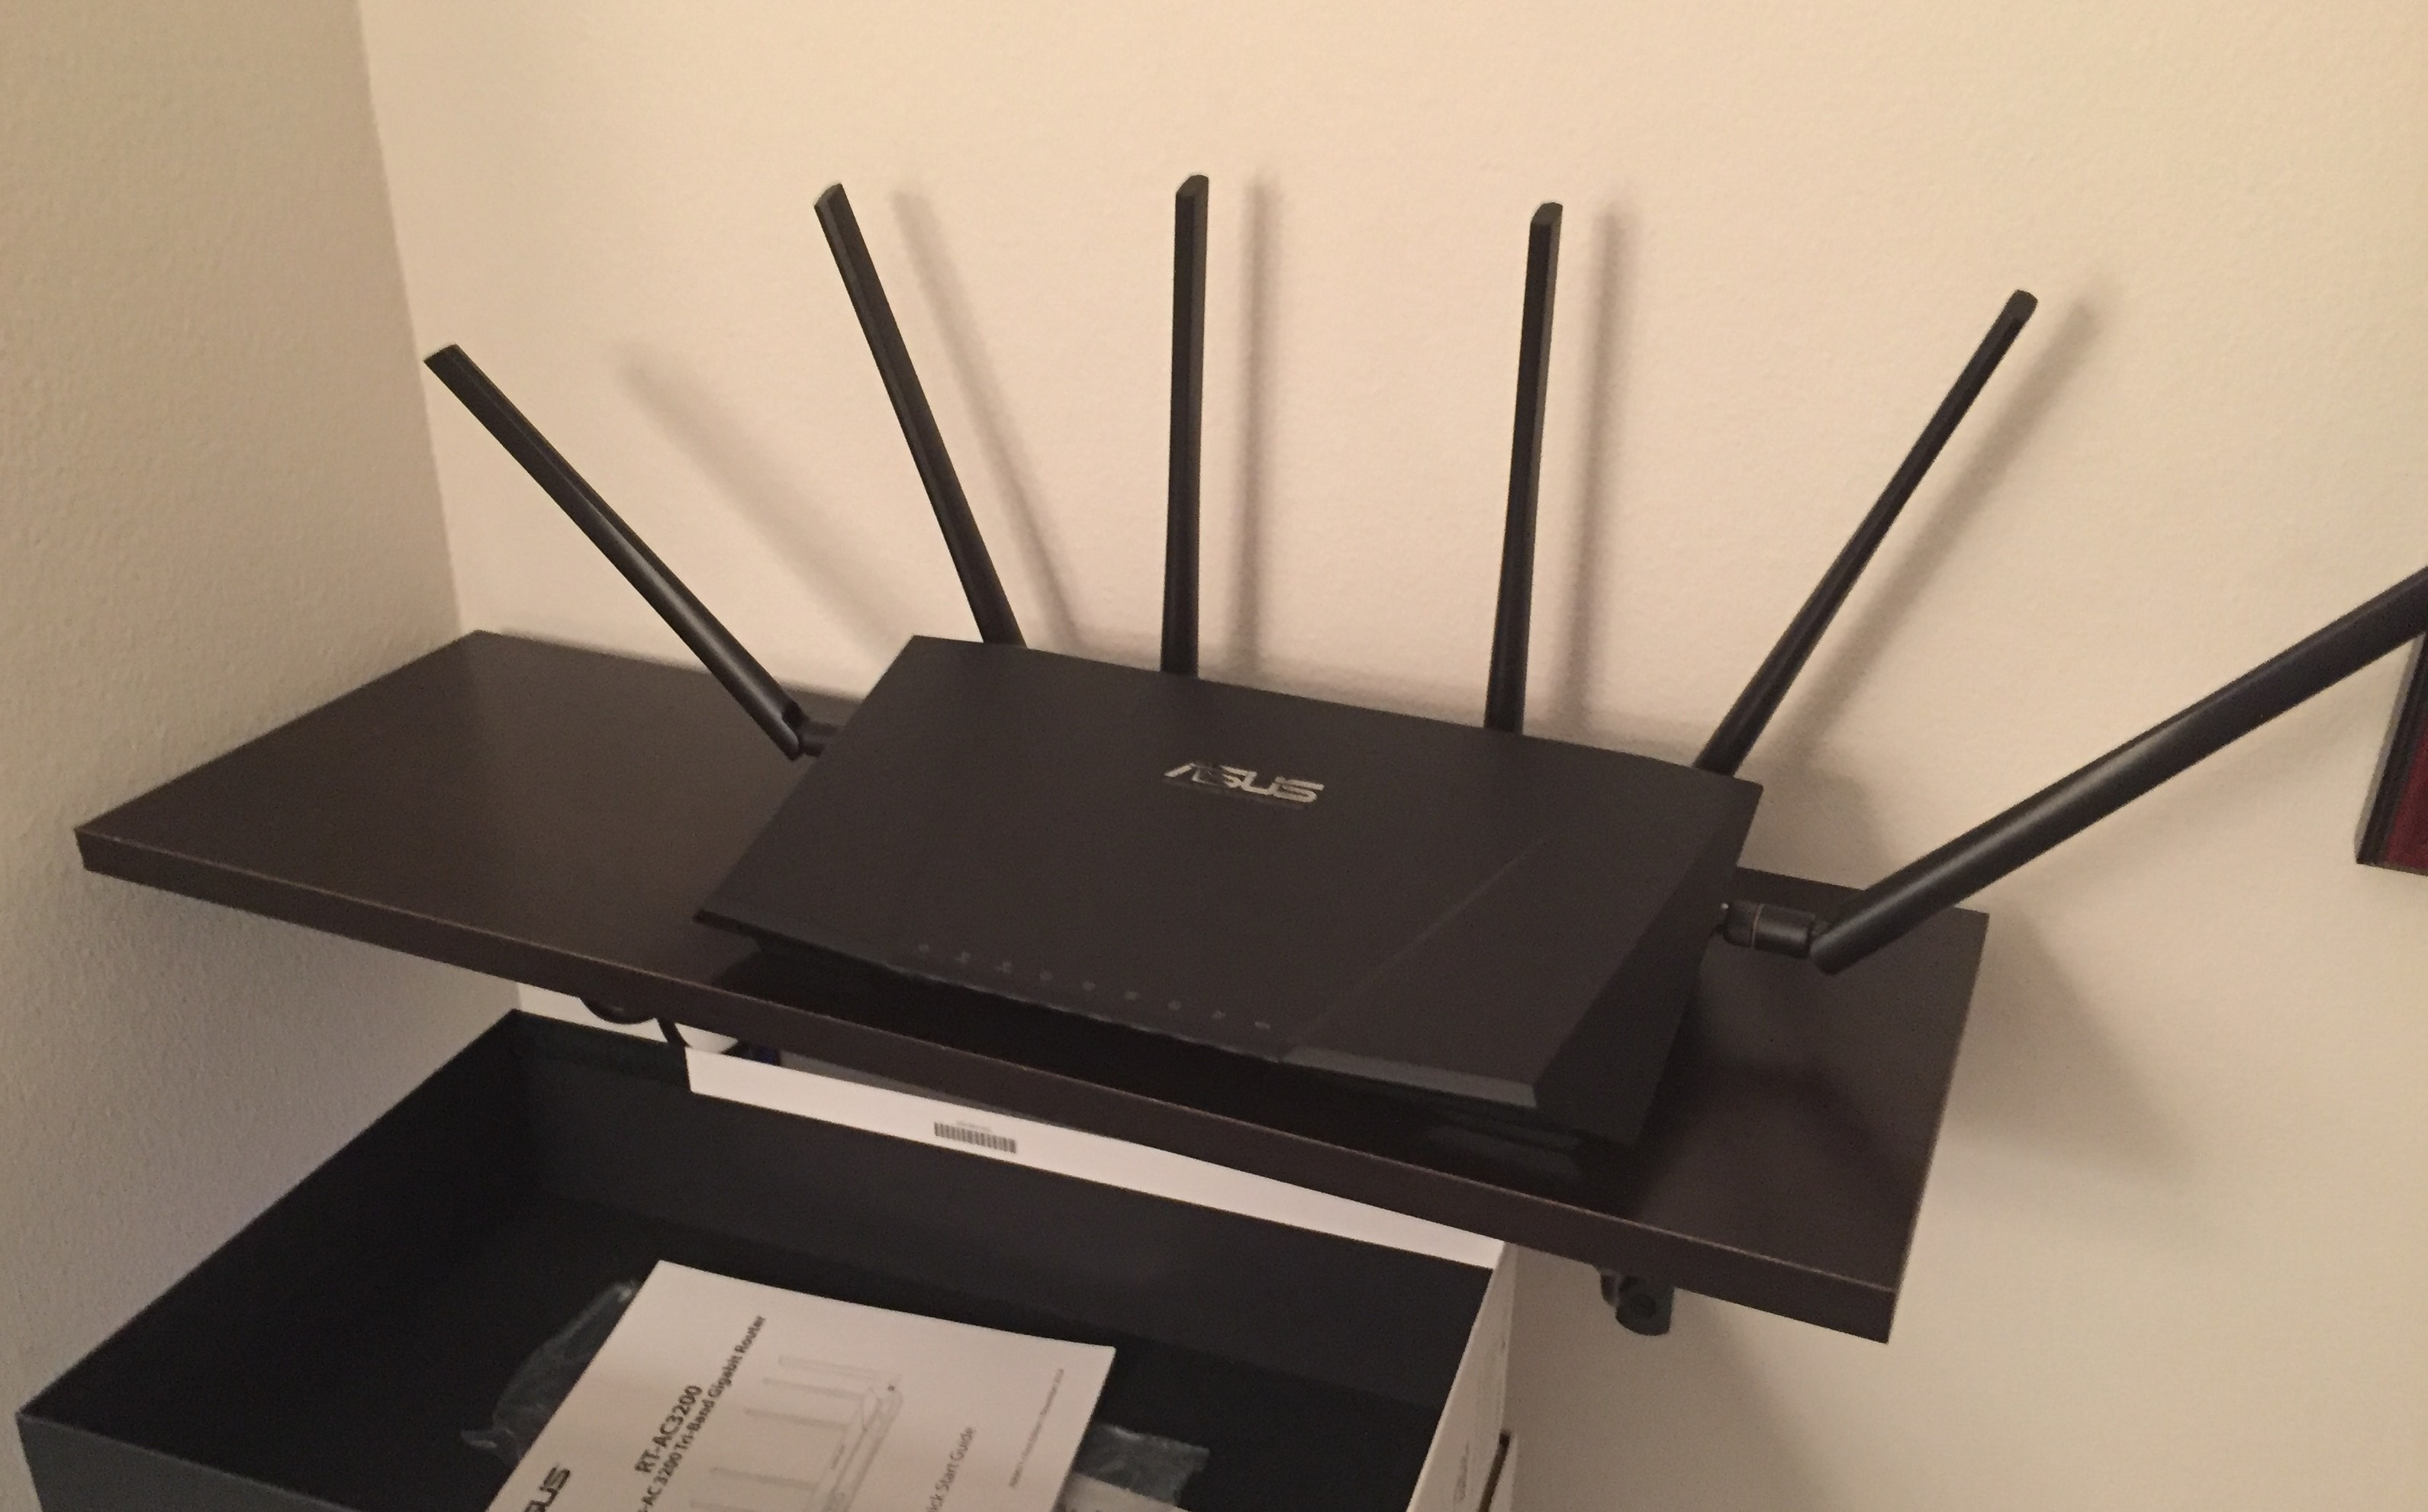 the wi one rt router an review upgrade around try link is patrol or all lead gear shelf asus d mesh arachnid looking system fi google like wifi retina your shitty if